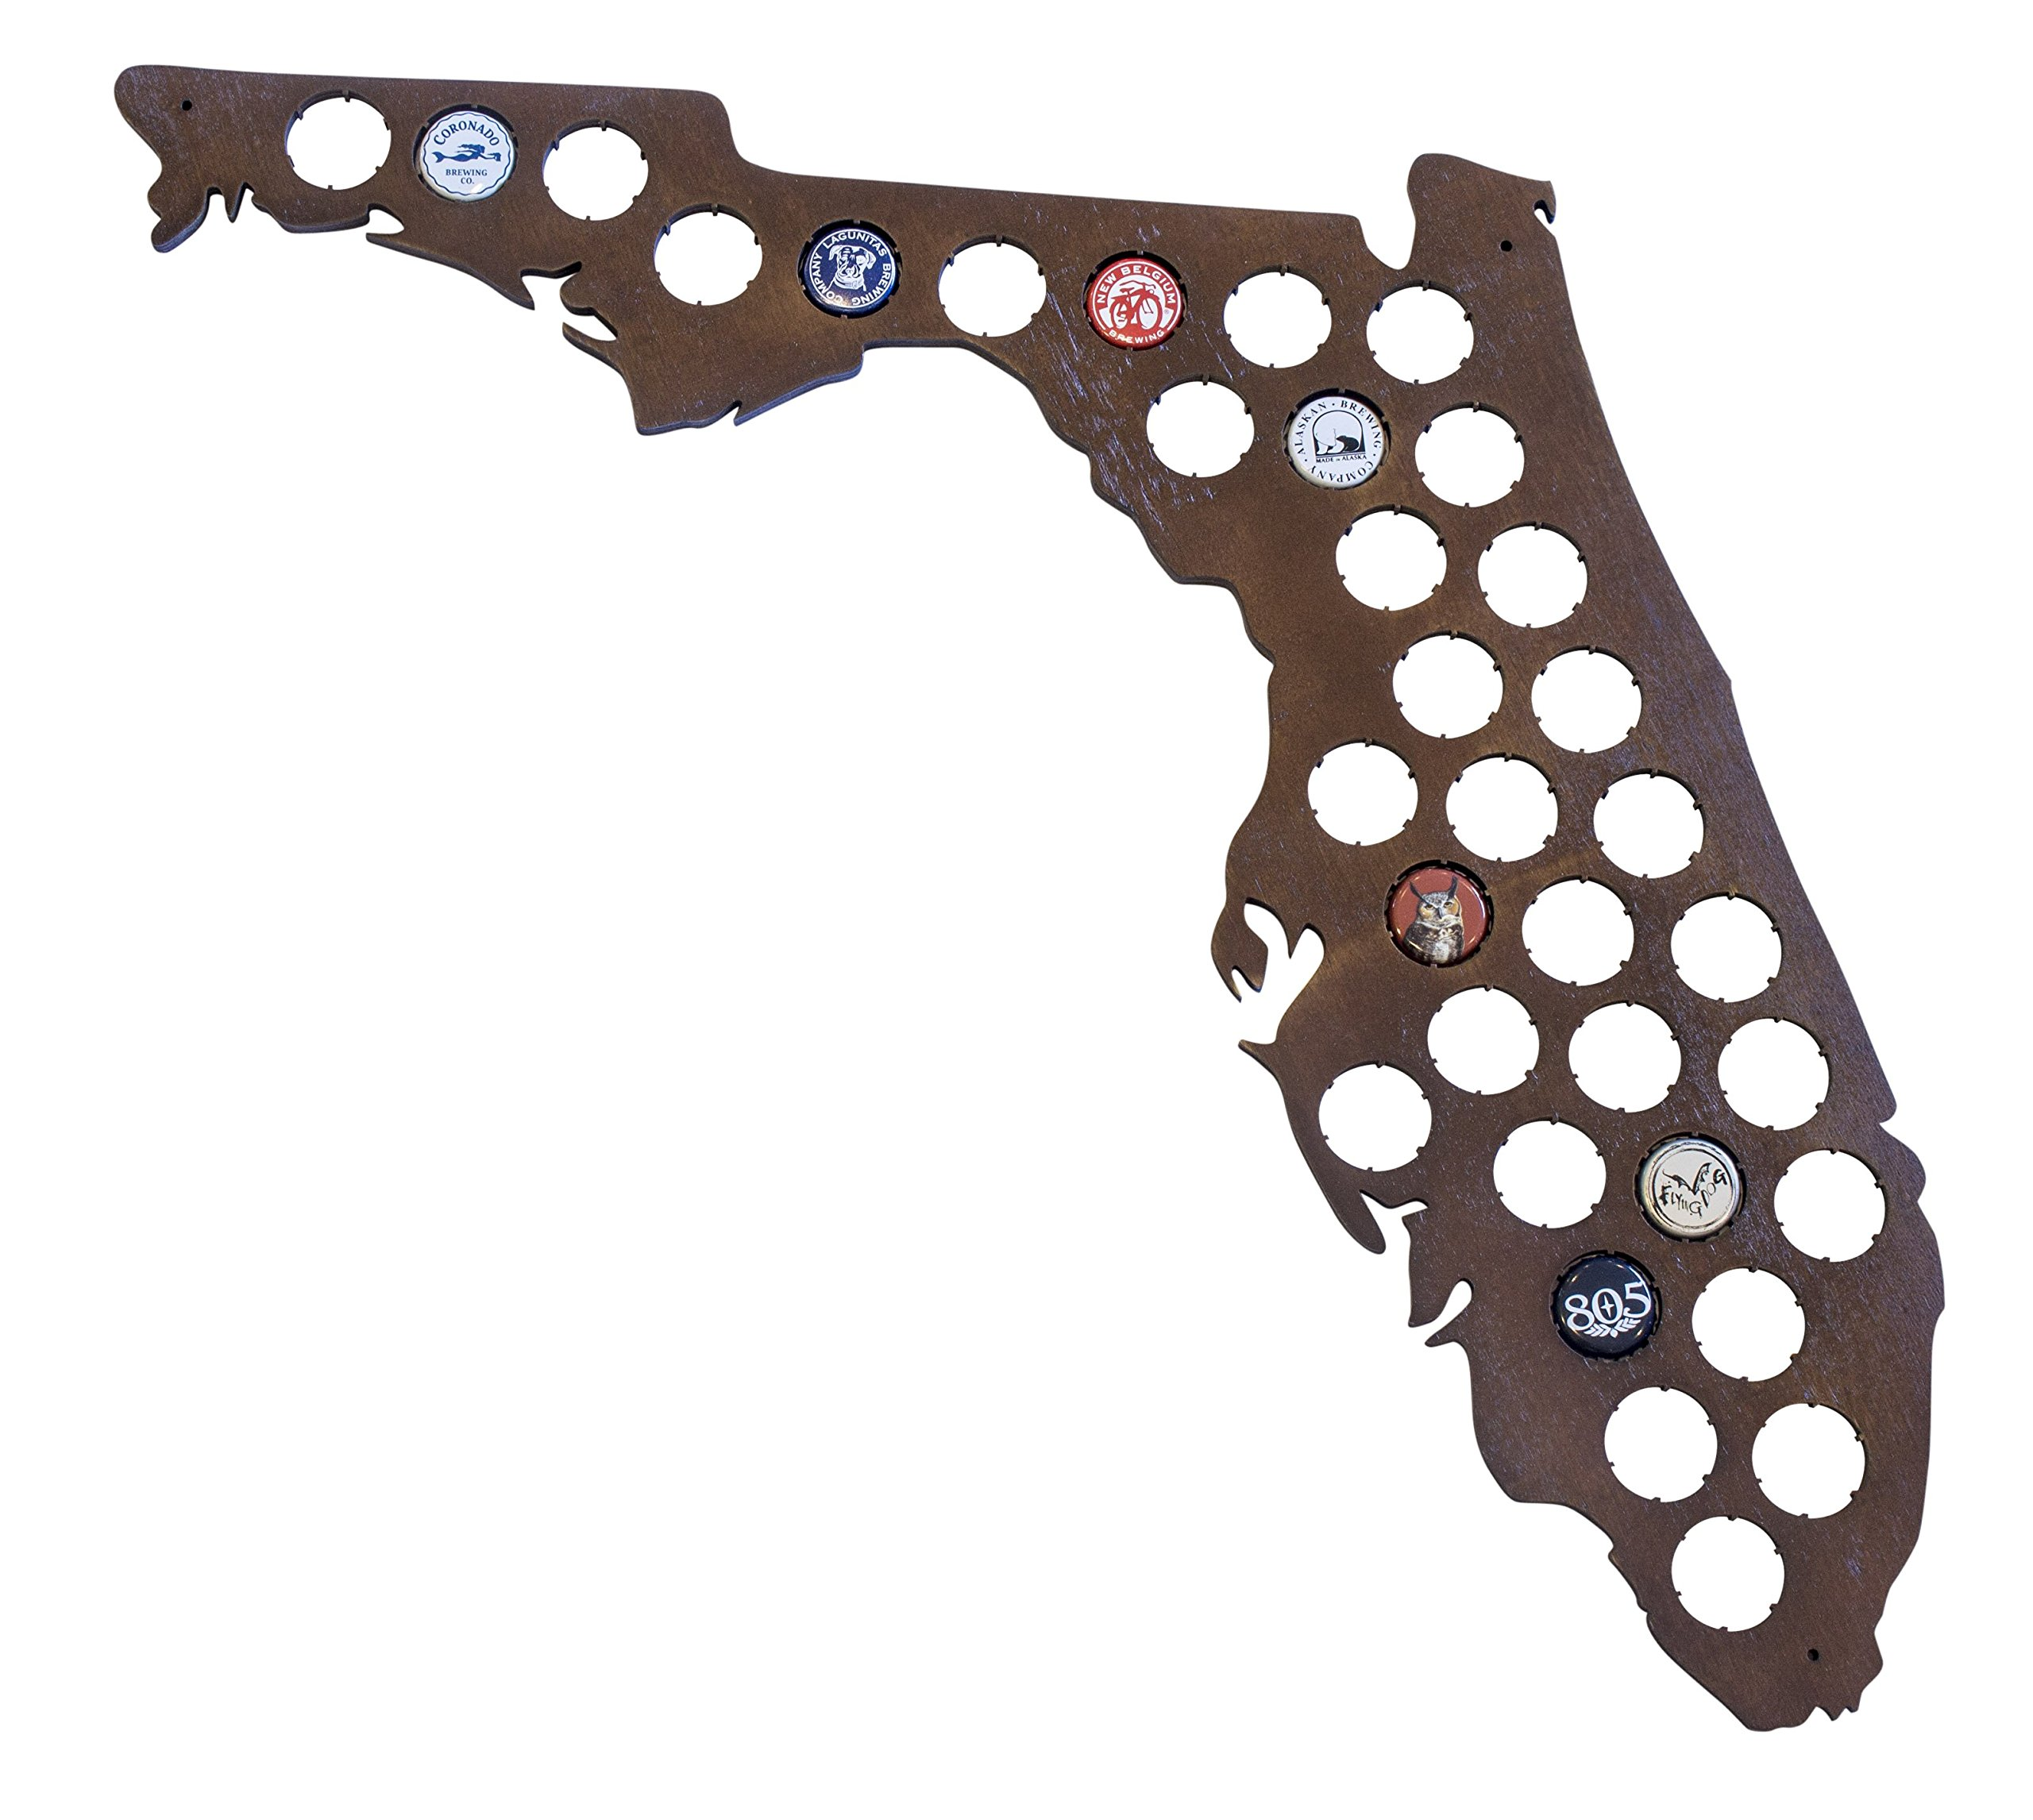 Florida Beer Cap Map - Holds Craft Beer Bottle Caps - Perfect FL Gift for Guys Brother Dads and Grads (Dark Stain) by Beer Cap Country